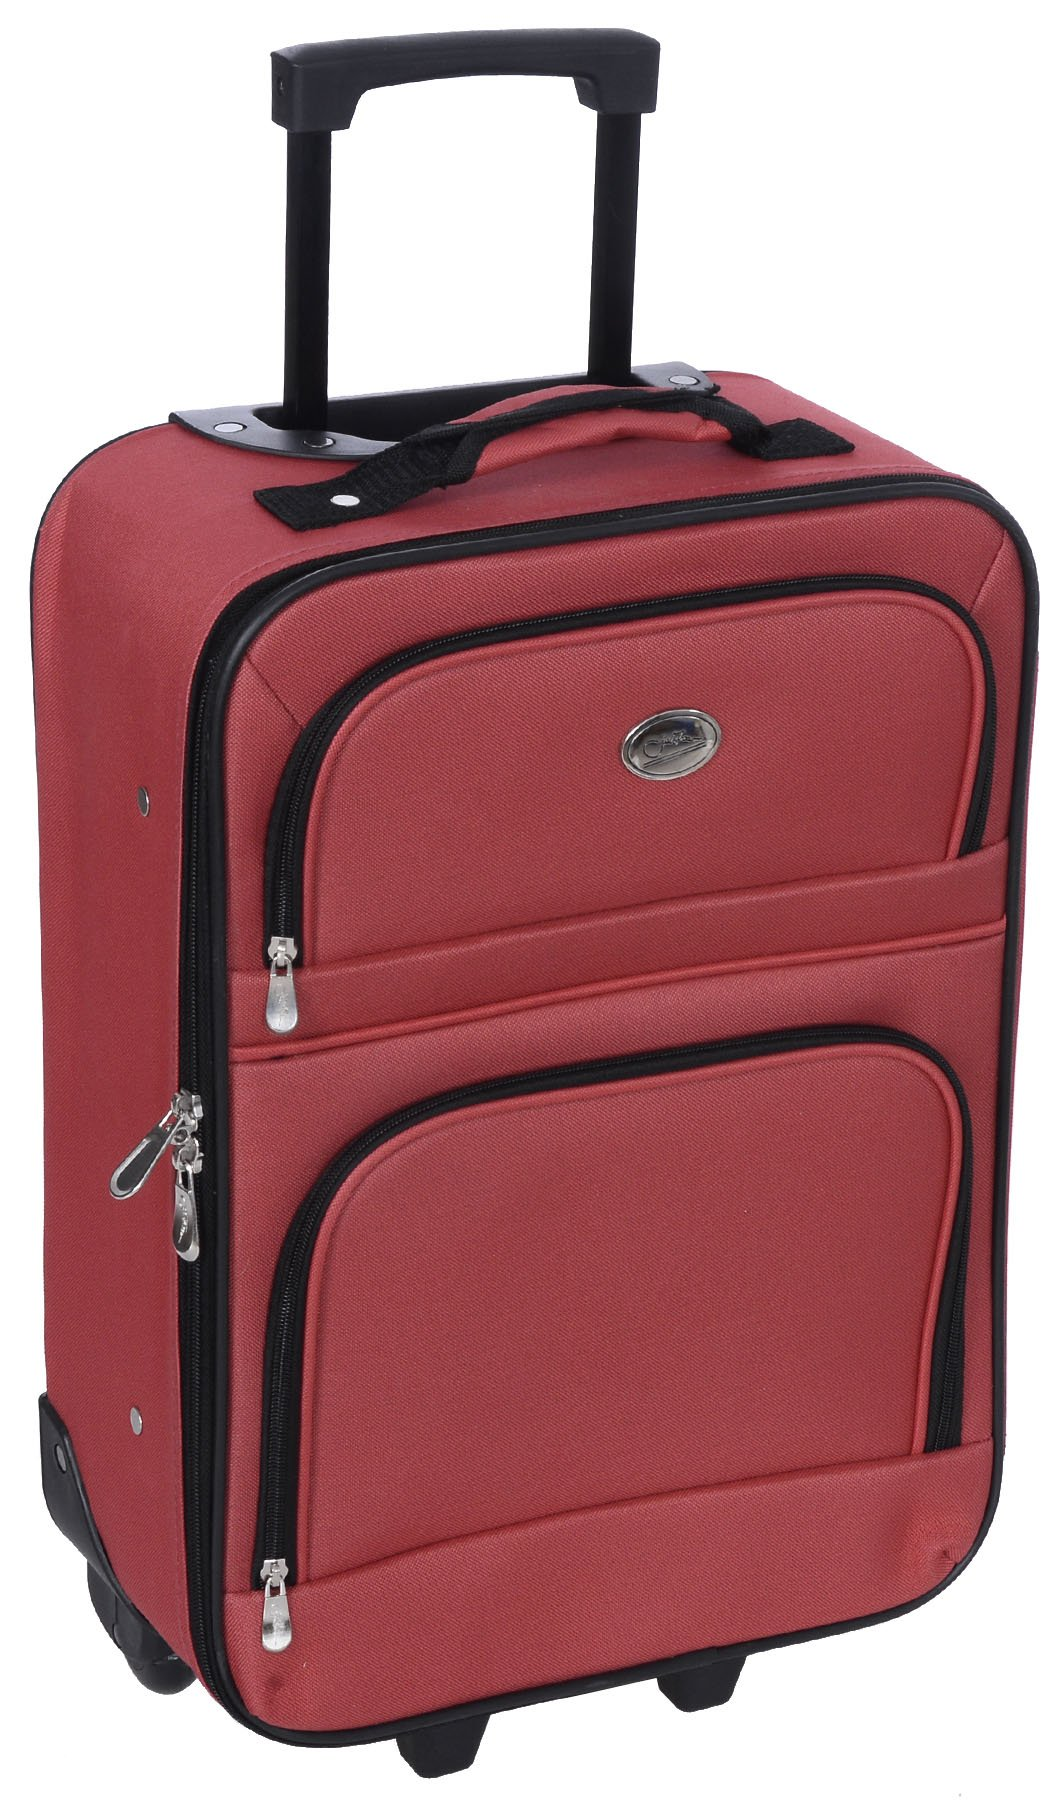 Jetstream 20 Inch Lightweight Luggage Softside Carry On Suitcase (Red)